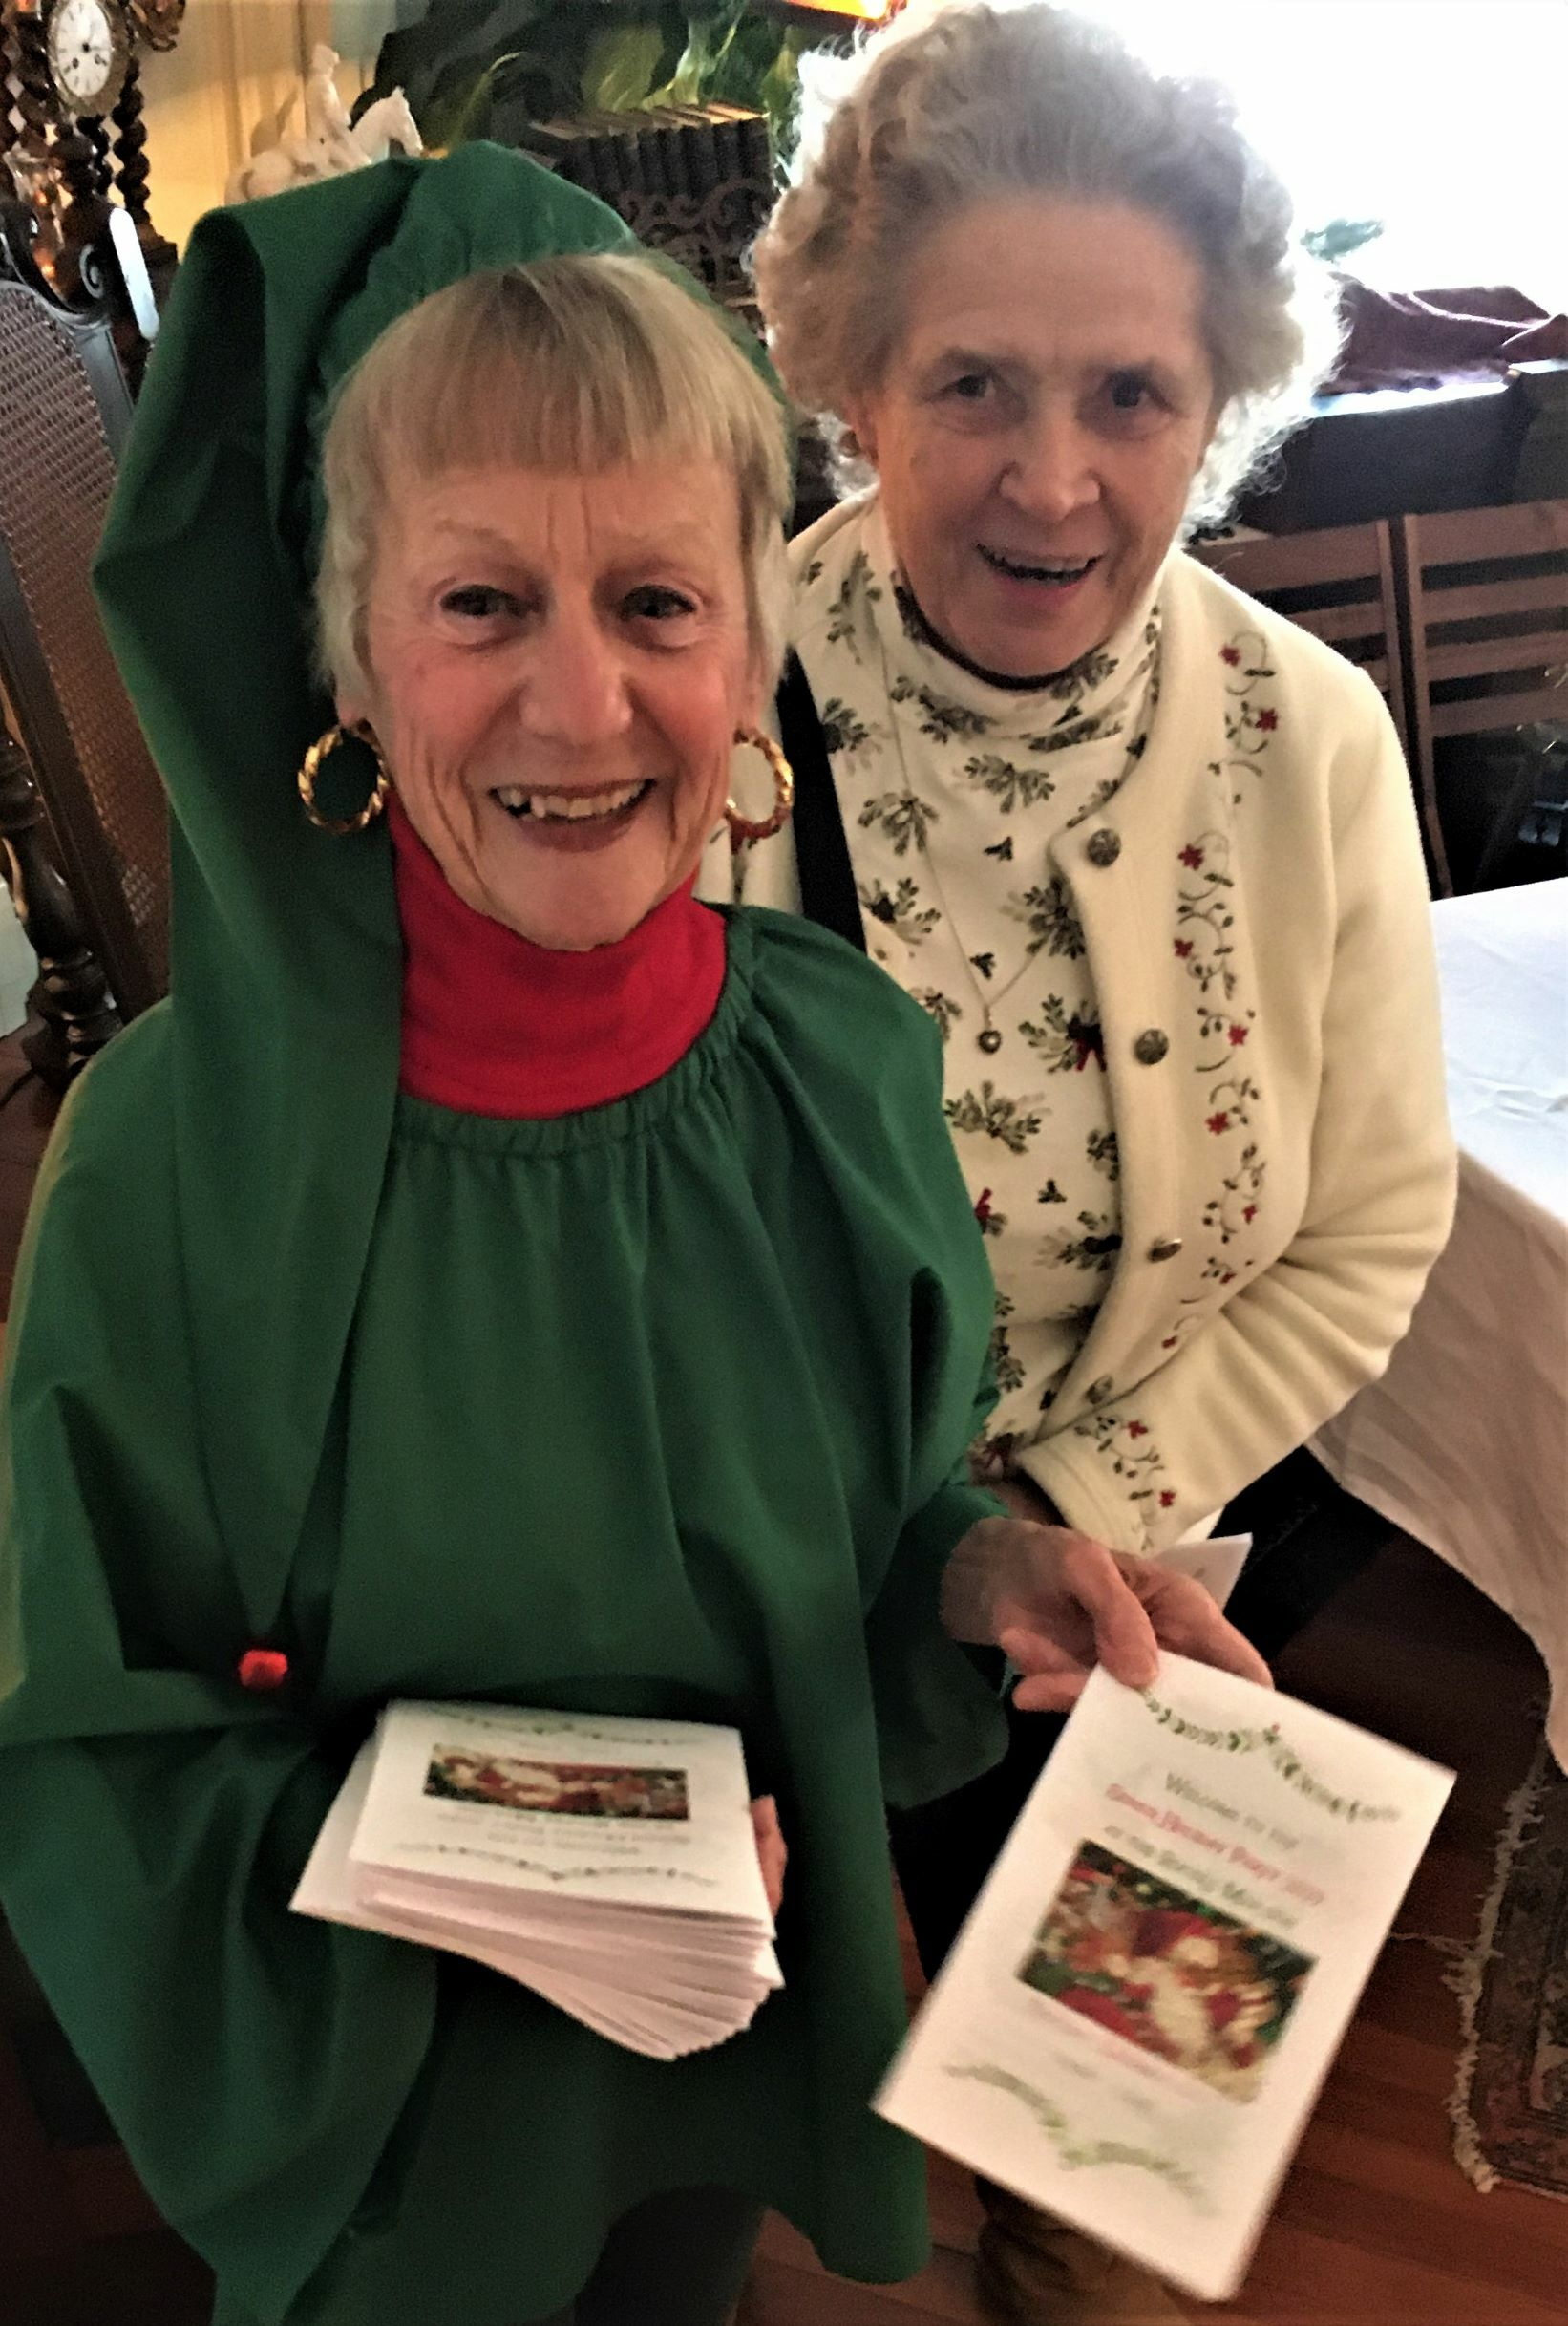 Southampton Village hosted a Senior Holiday Party at the Southampton History Museum's Rogers Mansion on December 12. Barbara Albecht and Betty Arnister were there spreading Christmas cheer.